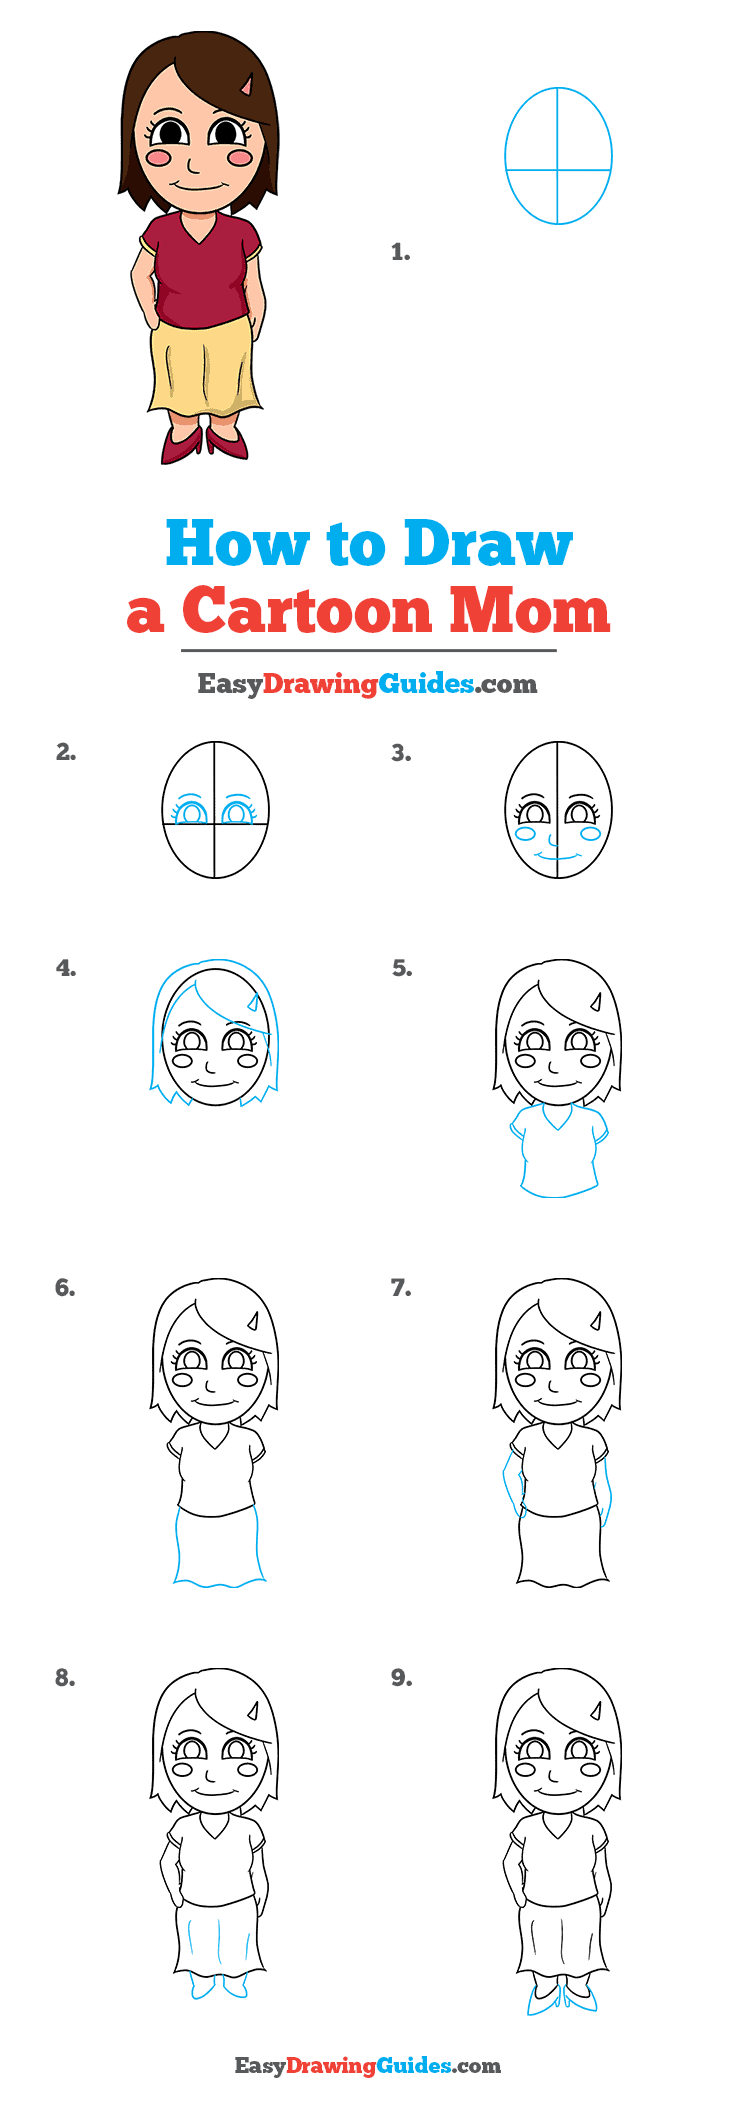 How to Draw Cartoon Mom